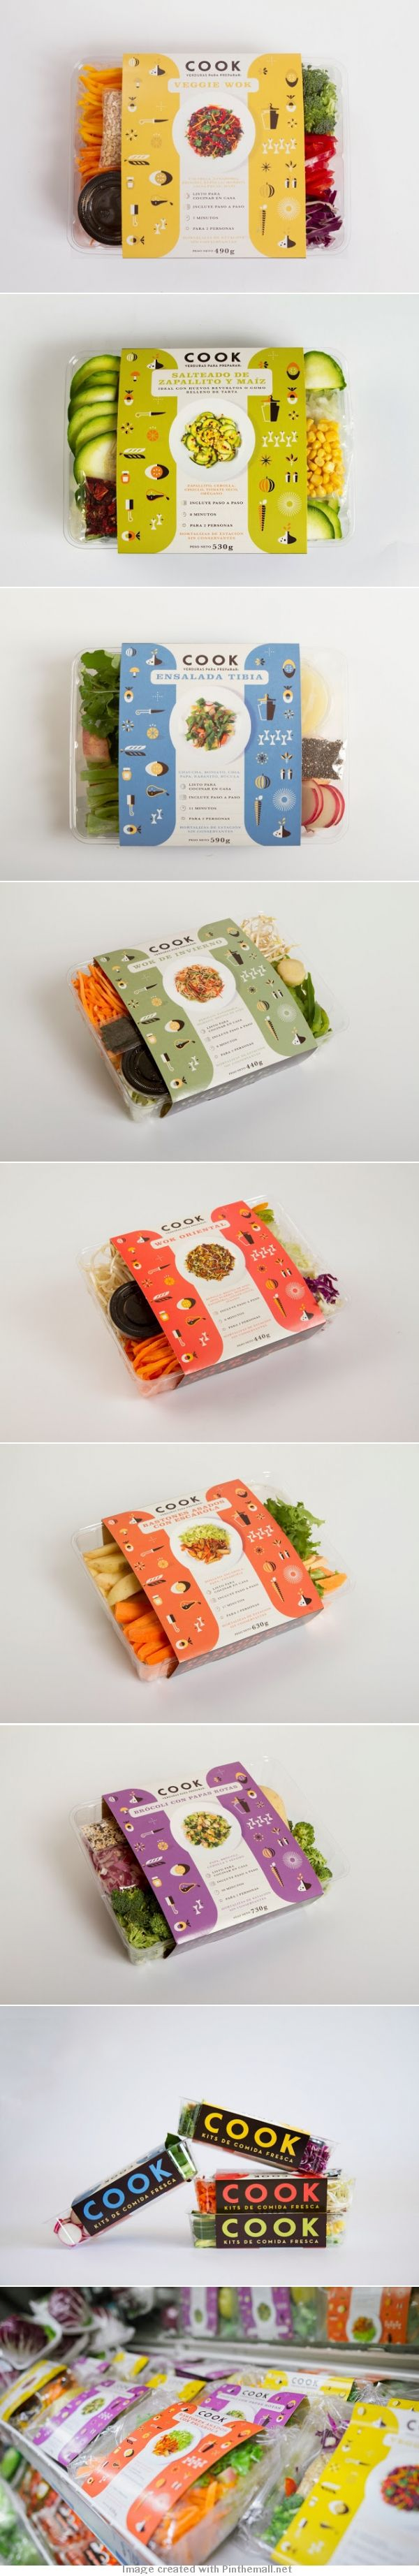 Cook (Uruguay) does an outstanding job of having packaging that pops and stands out. #Packaging #Design #Eat